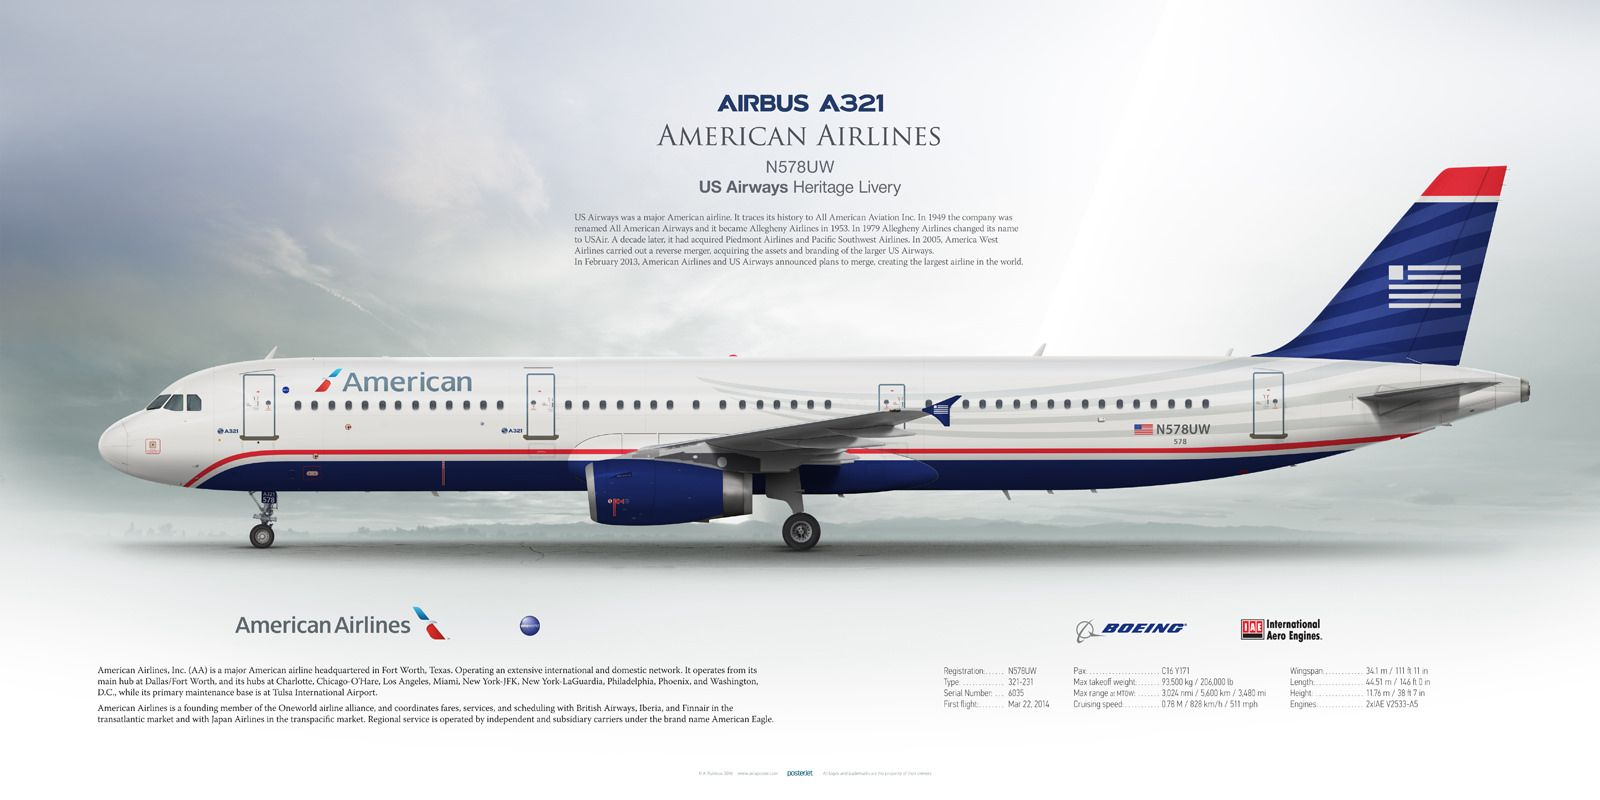 Airbus A321 American Airlines Us Airways Heritage Livery